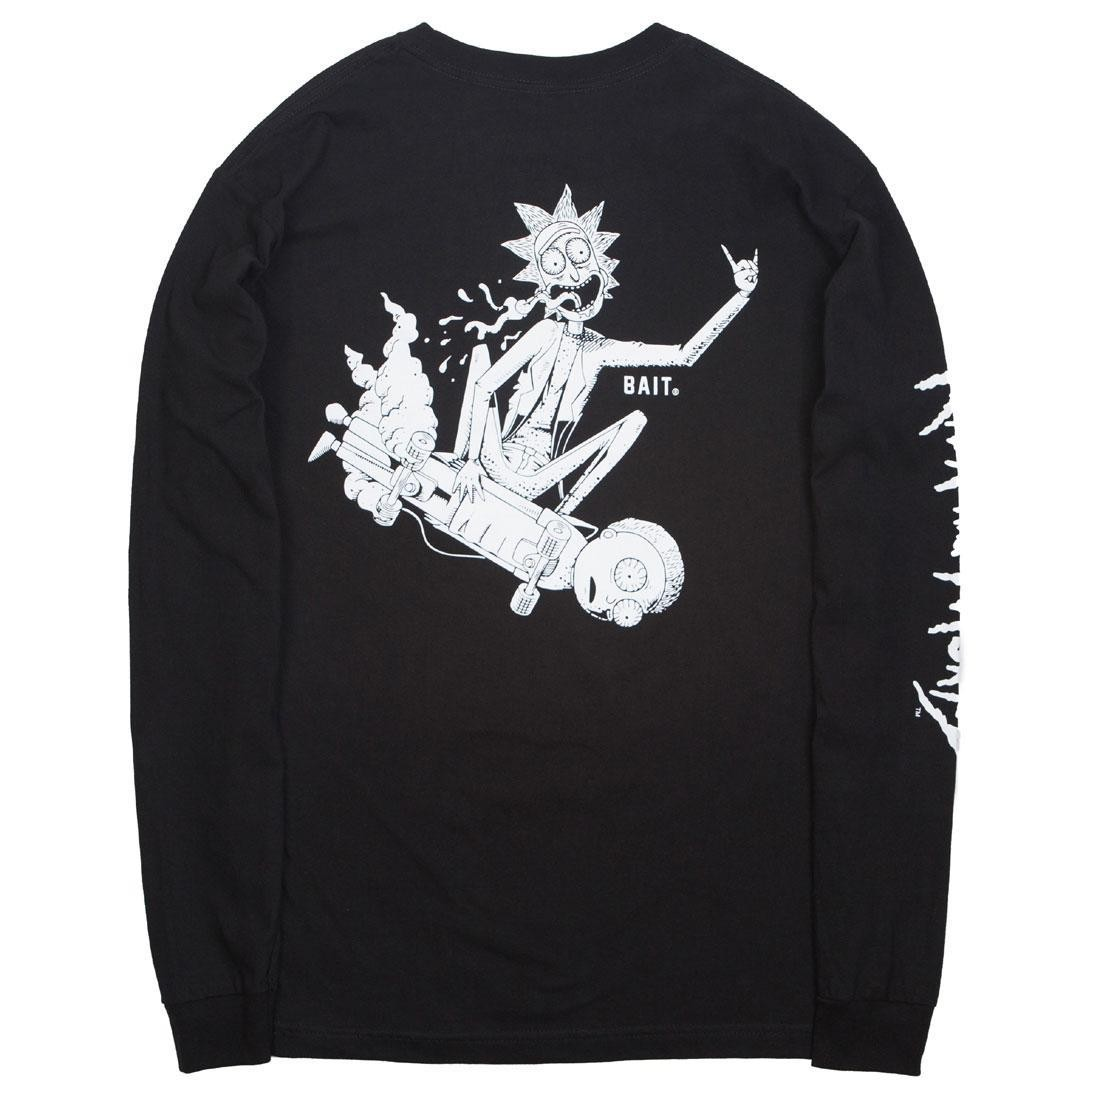 BAIT x Rick and Morty Men Skateboard Long Sleeve Tee (black)